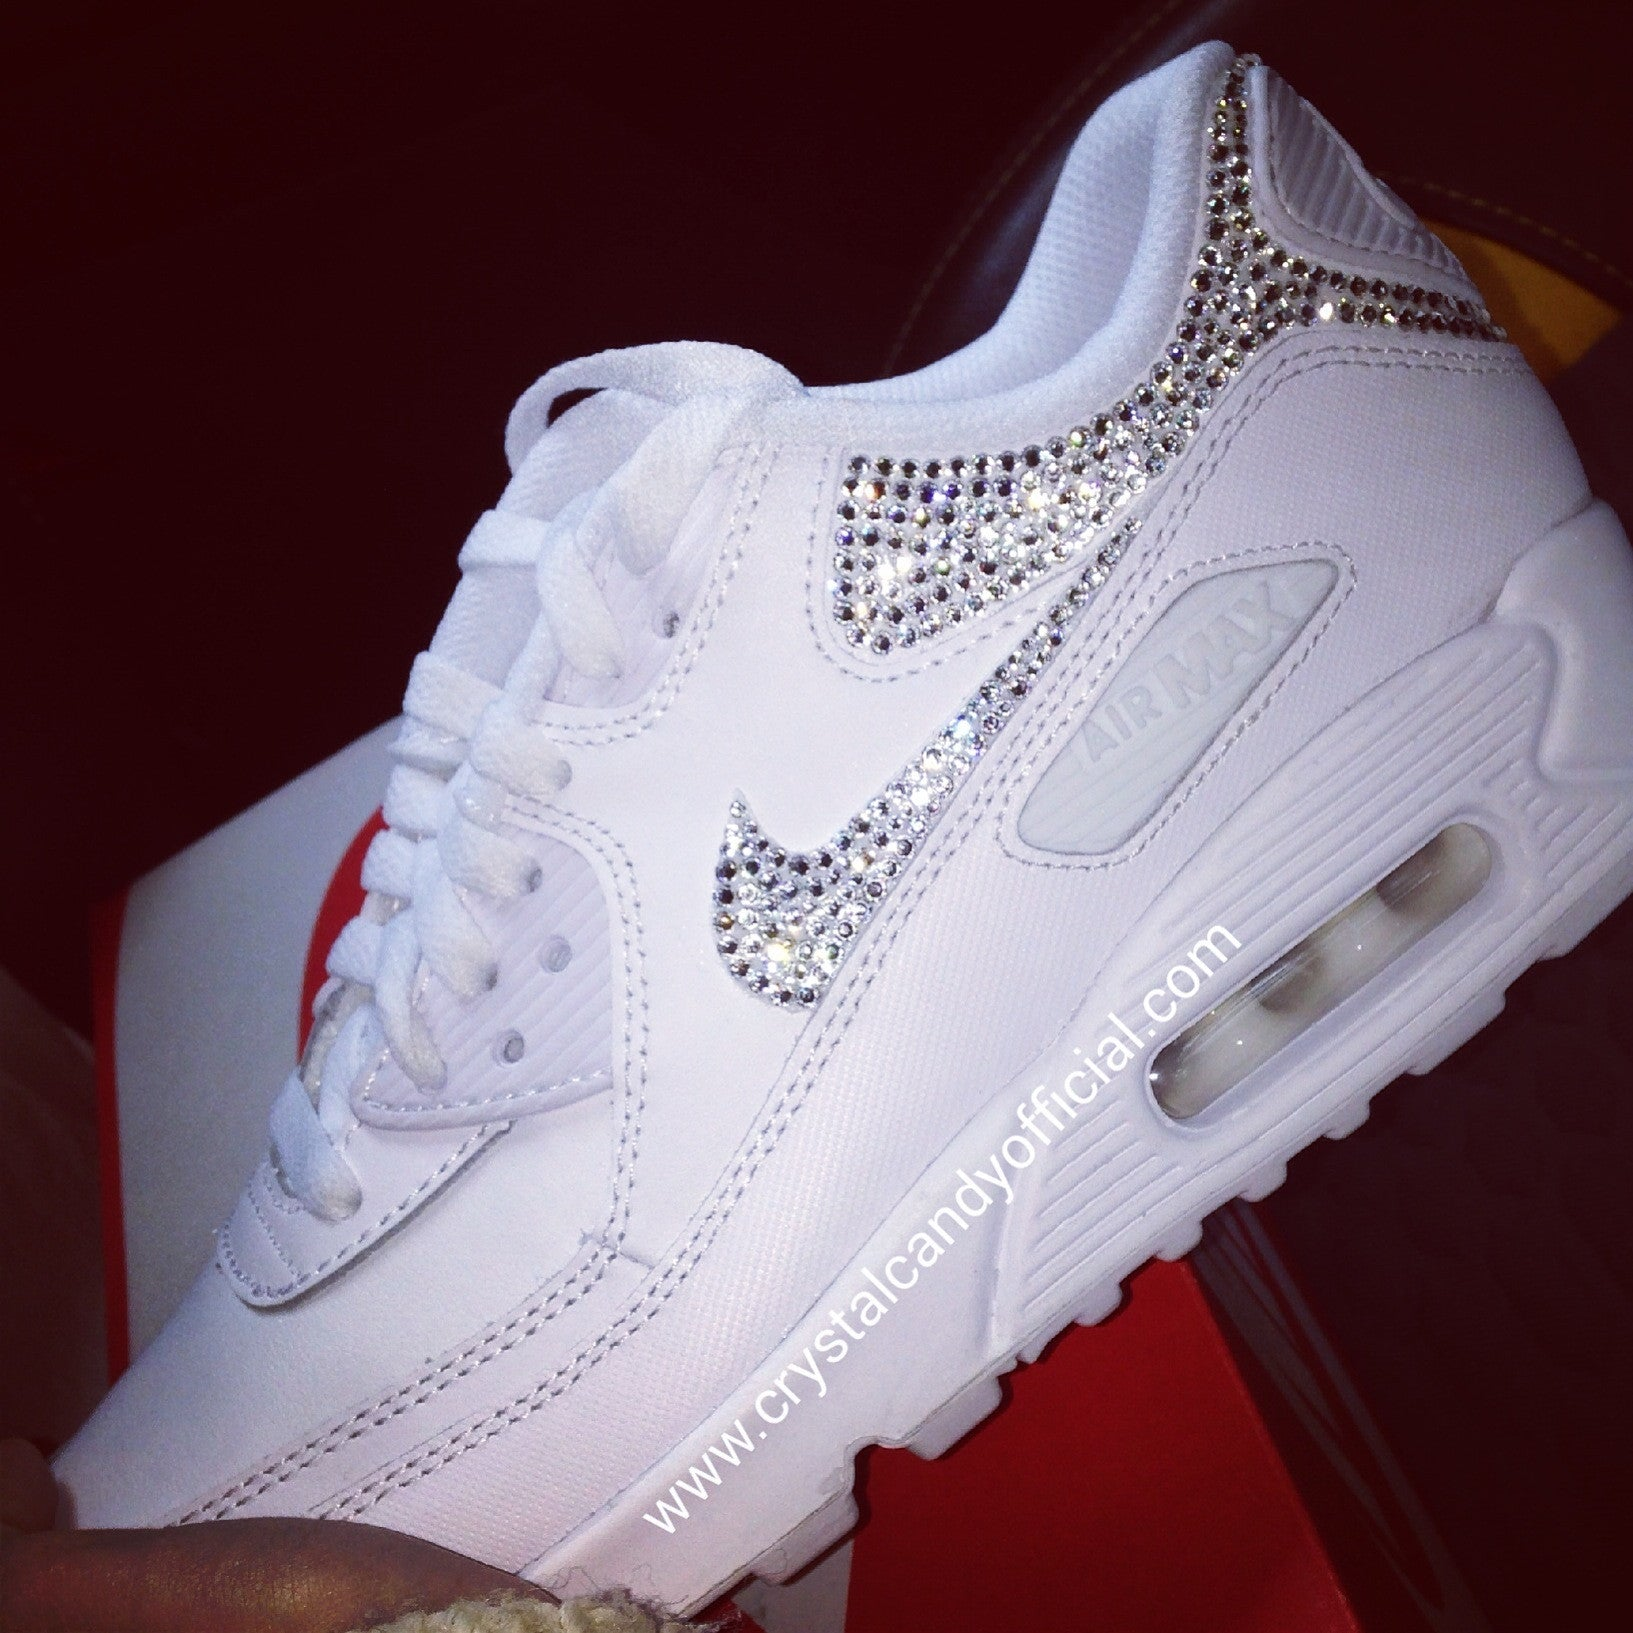 cheaper 64541 c4925 Crystal Nike Air Max 90 s in White (backs   ticks)